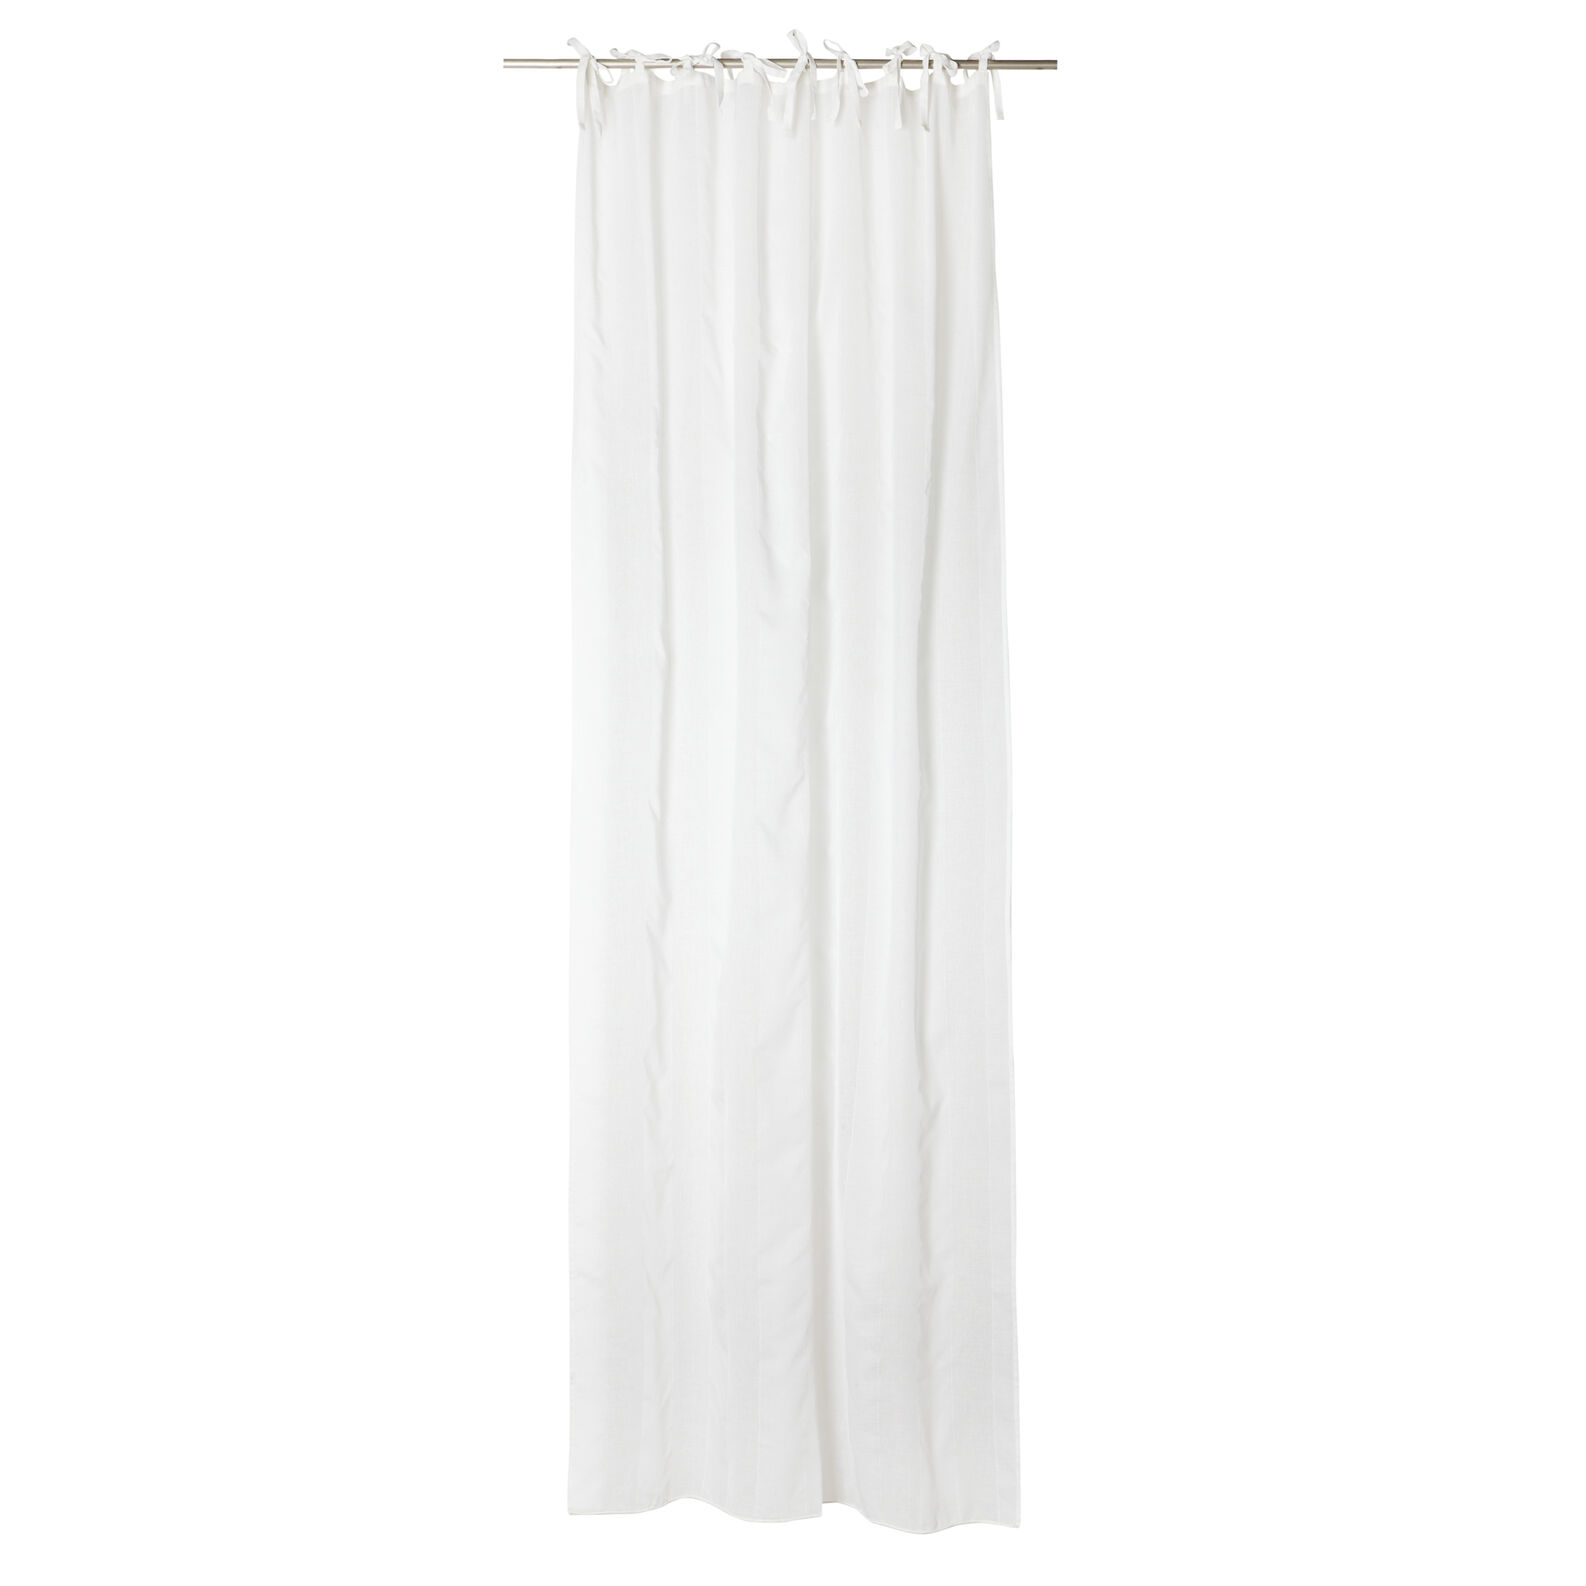 Curtain vertical striped